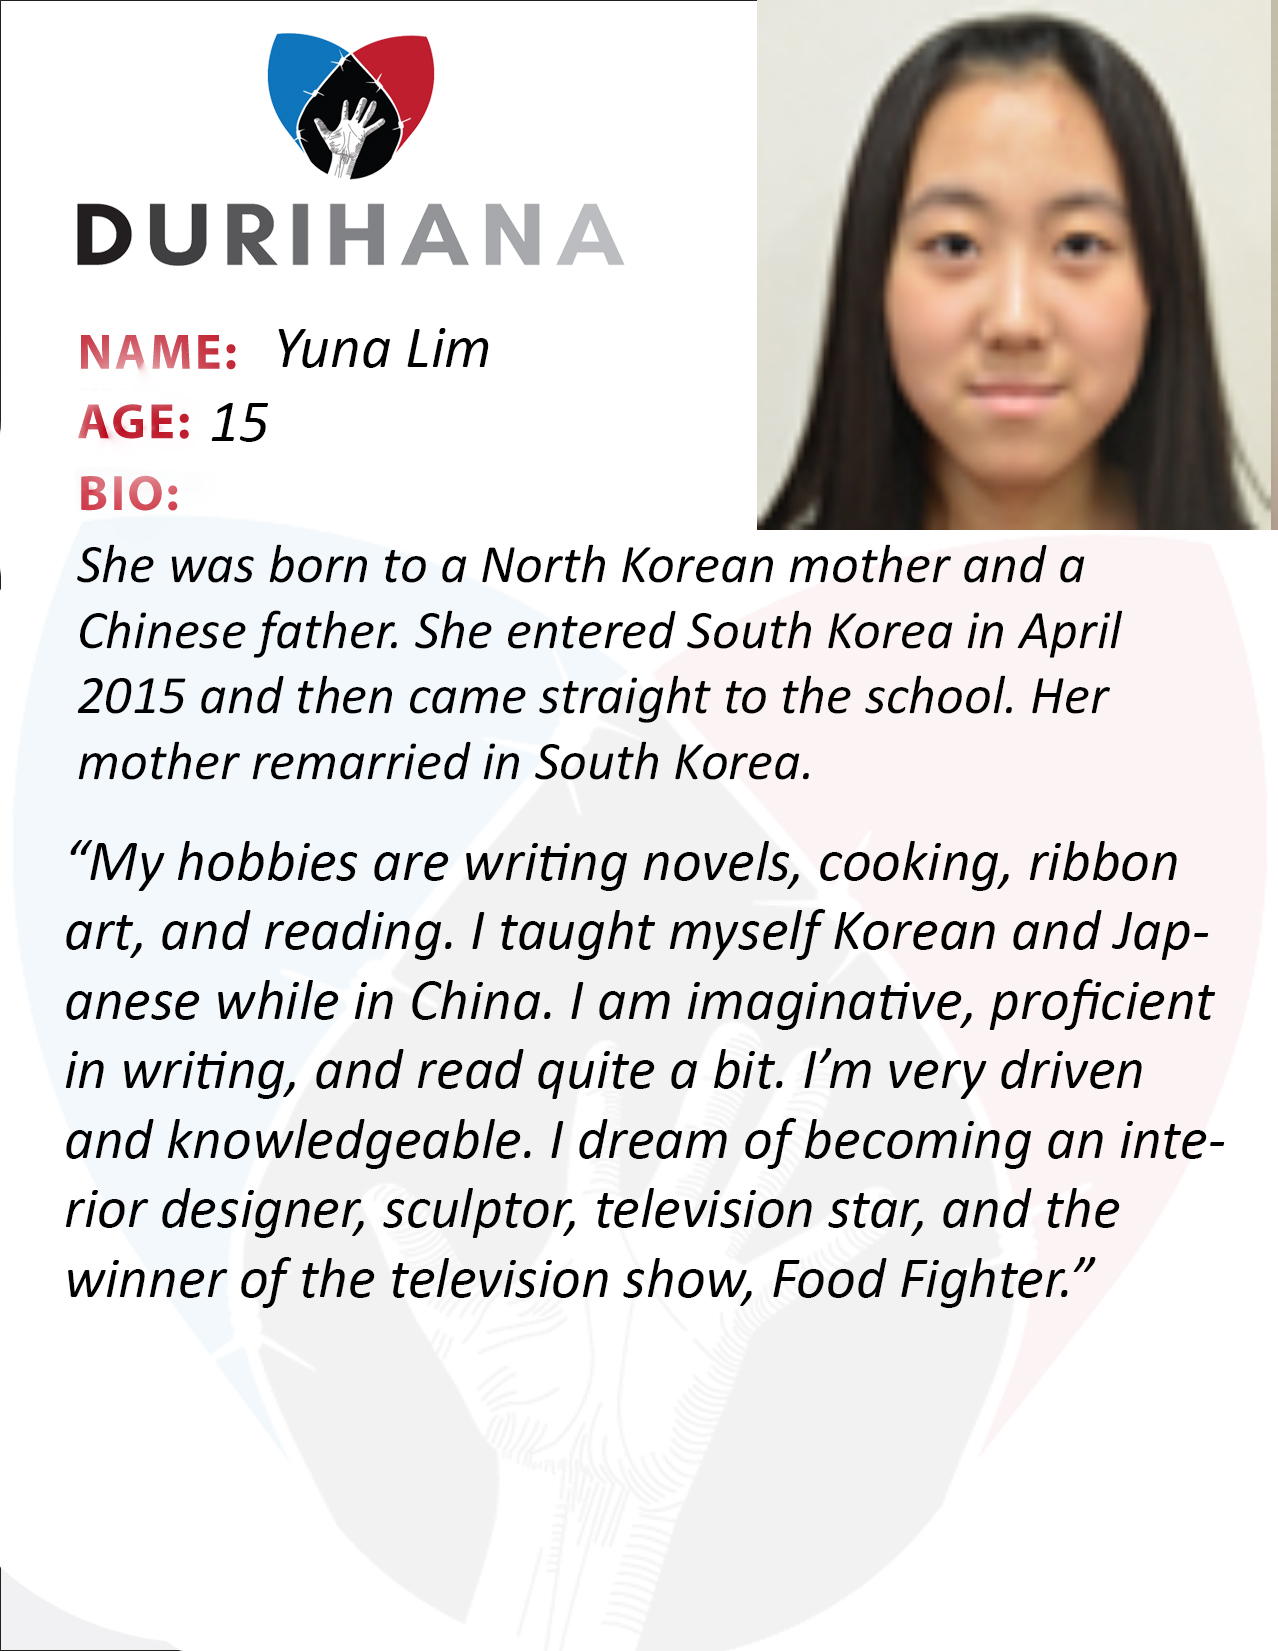 Biographies Durihana Inc